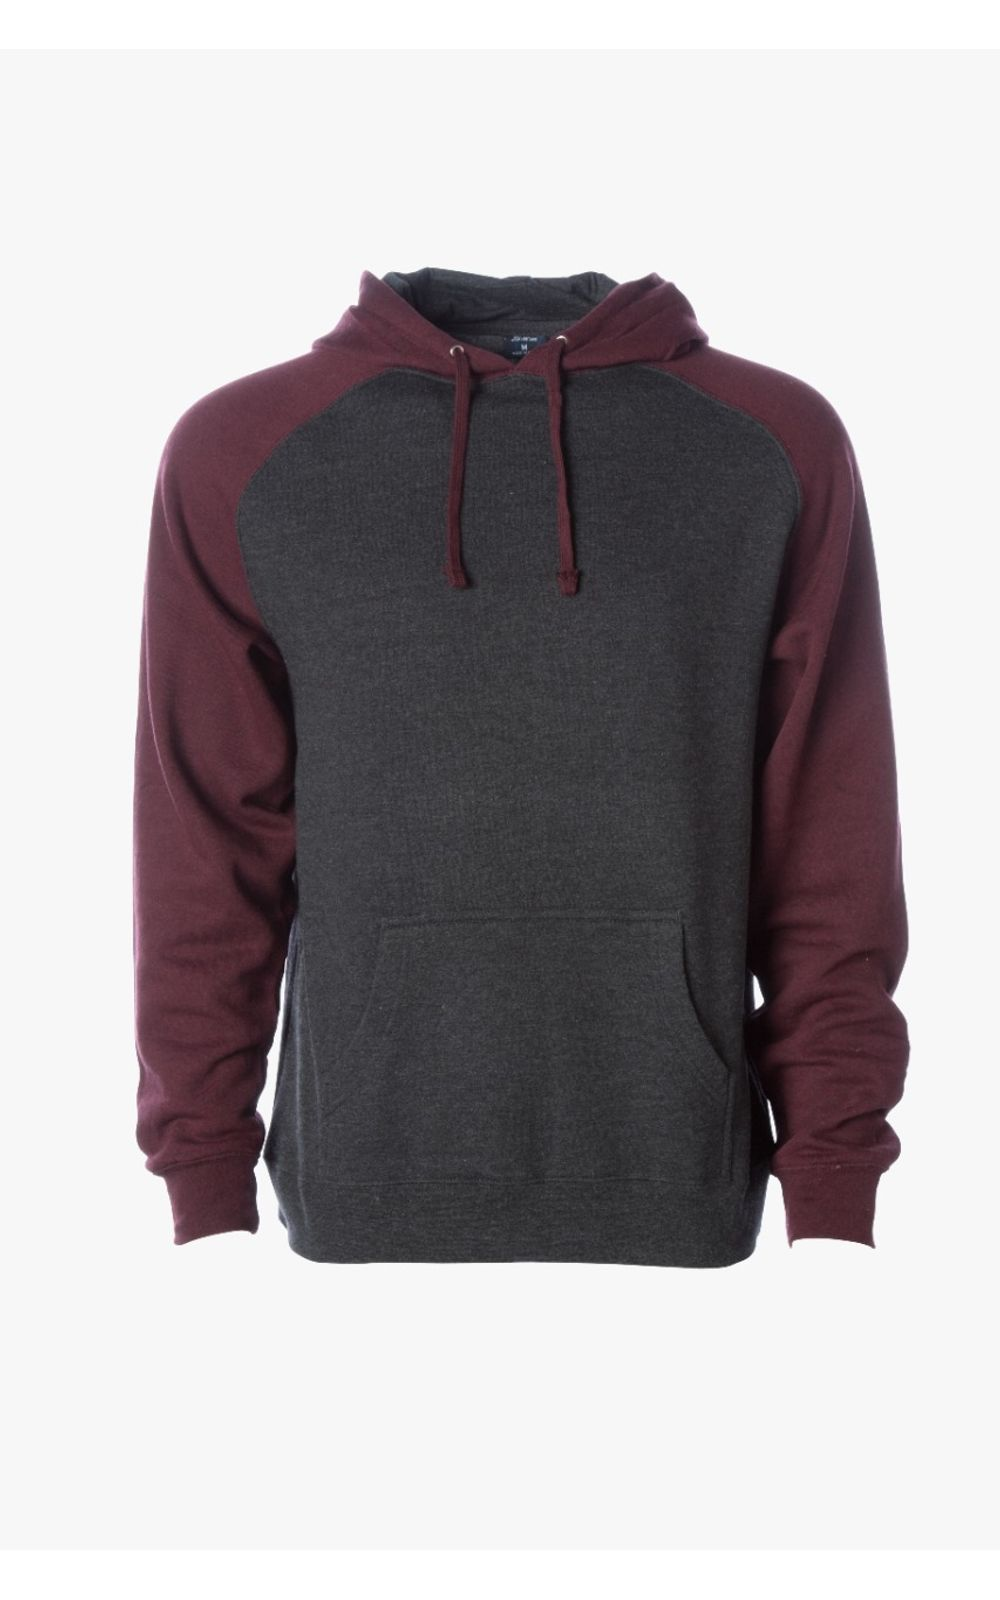 IND40RP-Charcoal-Heather-Burgundy-Heather-1